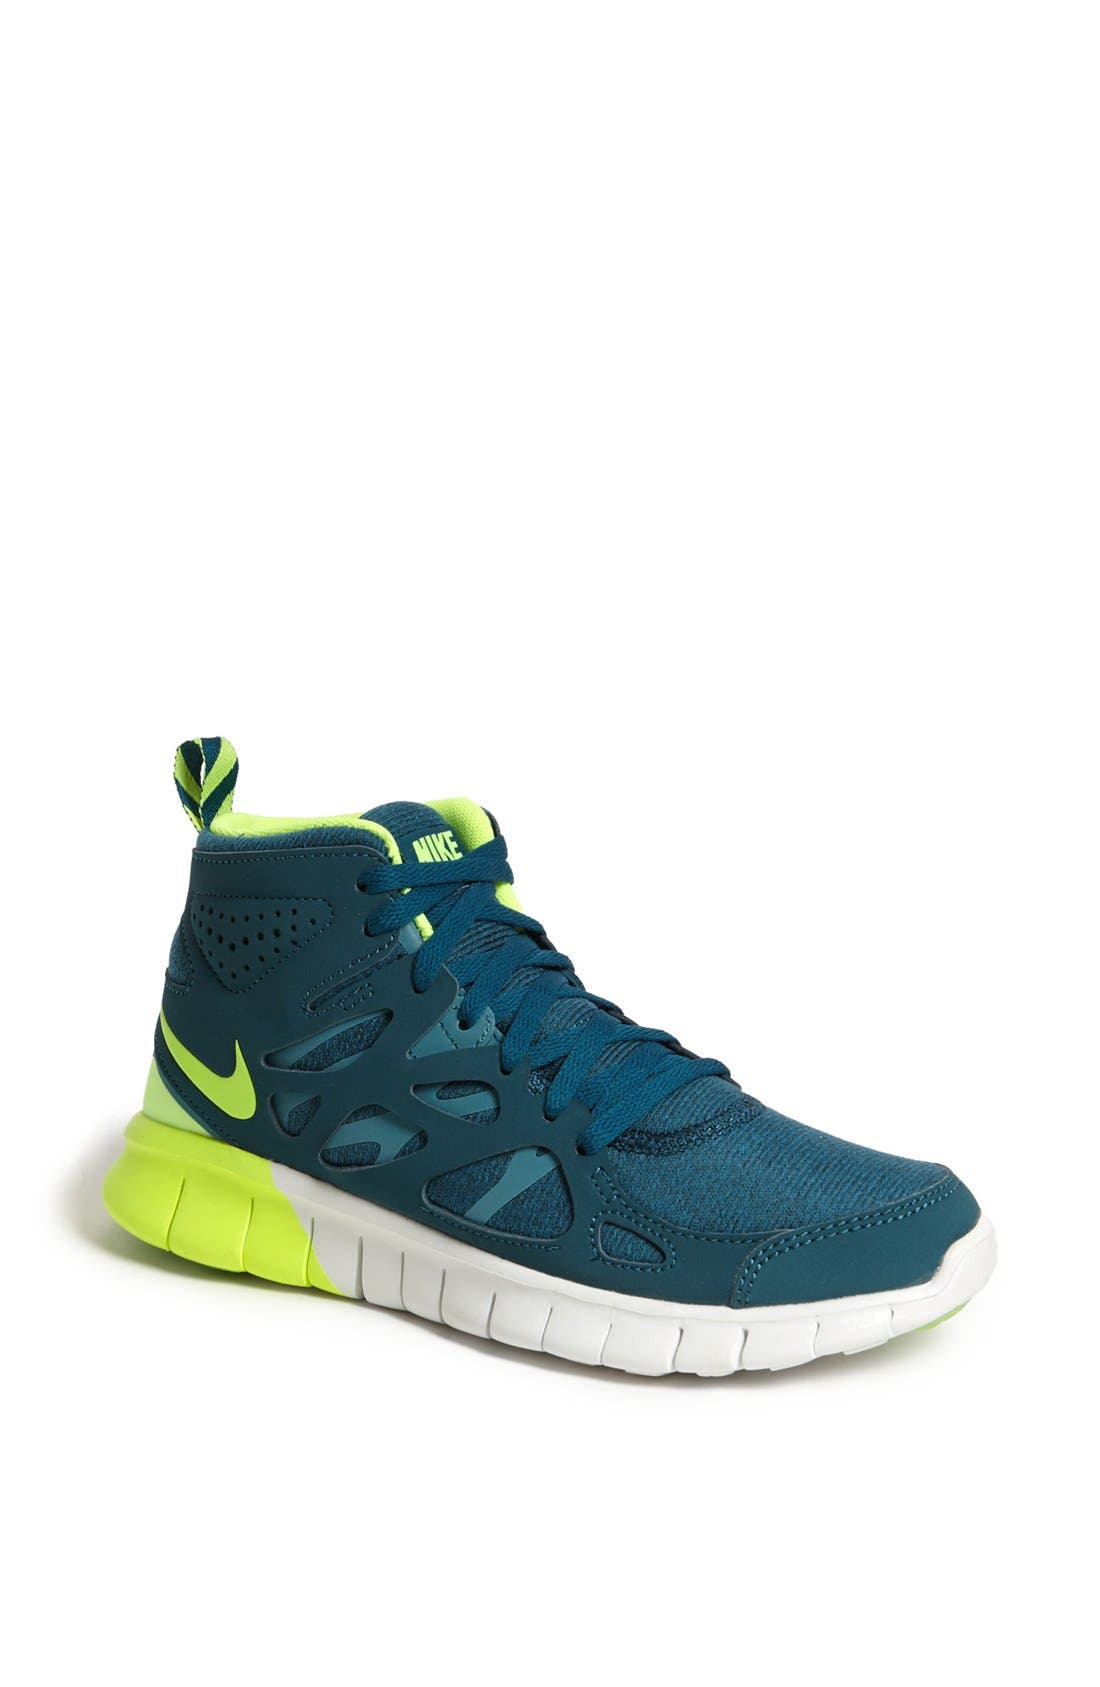 Main Image - Nike 'Free Run 2' Sneaker Boot